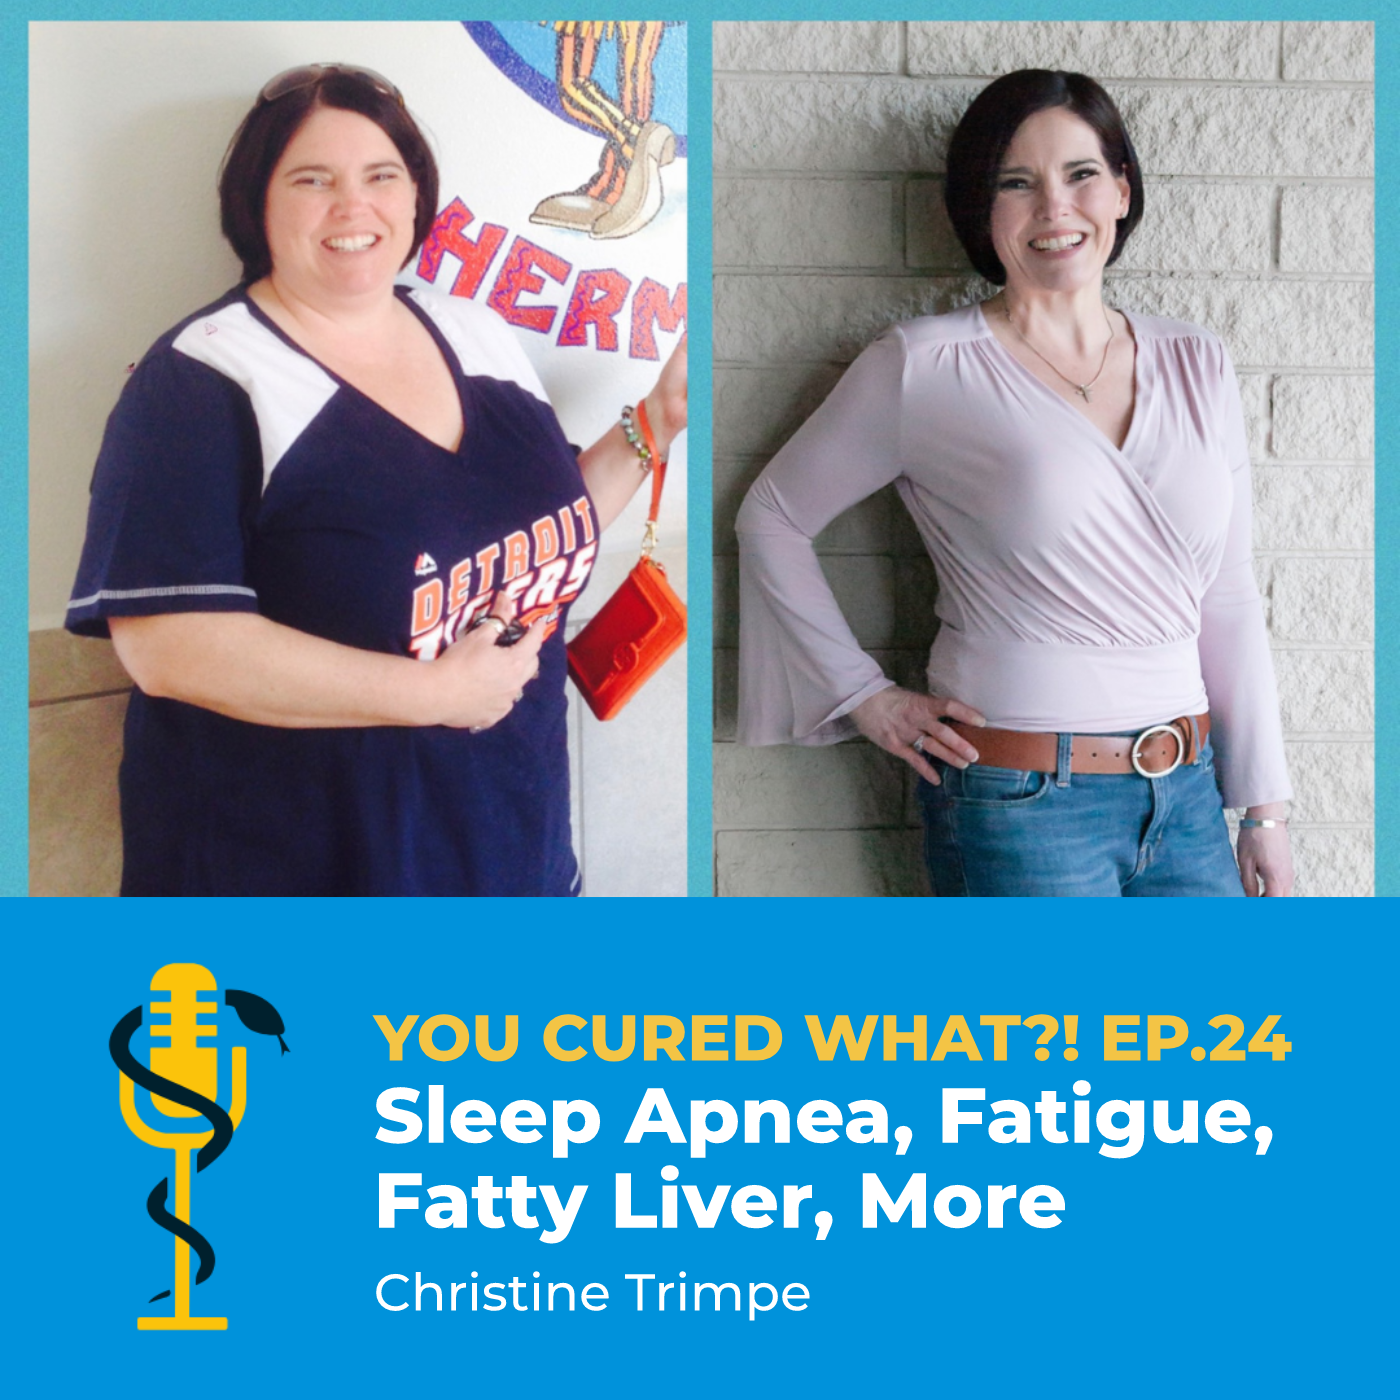 Ep.24: Sleep Apnea, Fatigue, Fatty Liver, More with Christine Trimpe